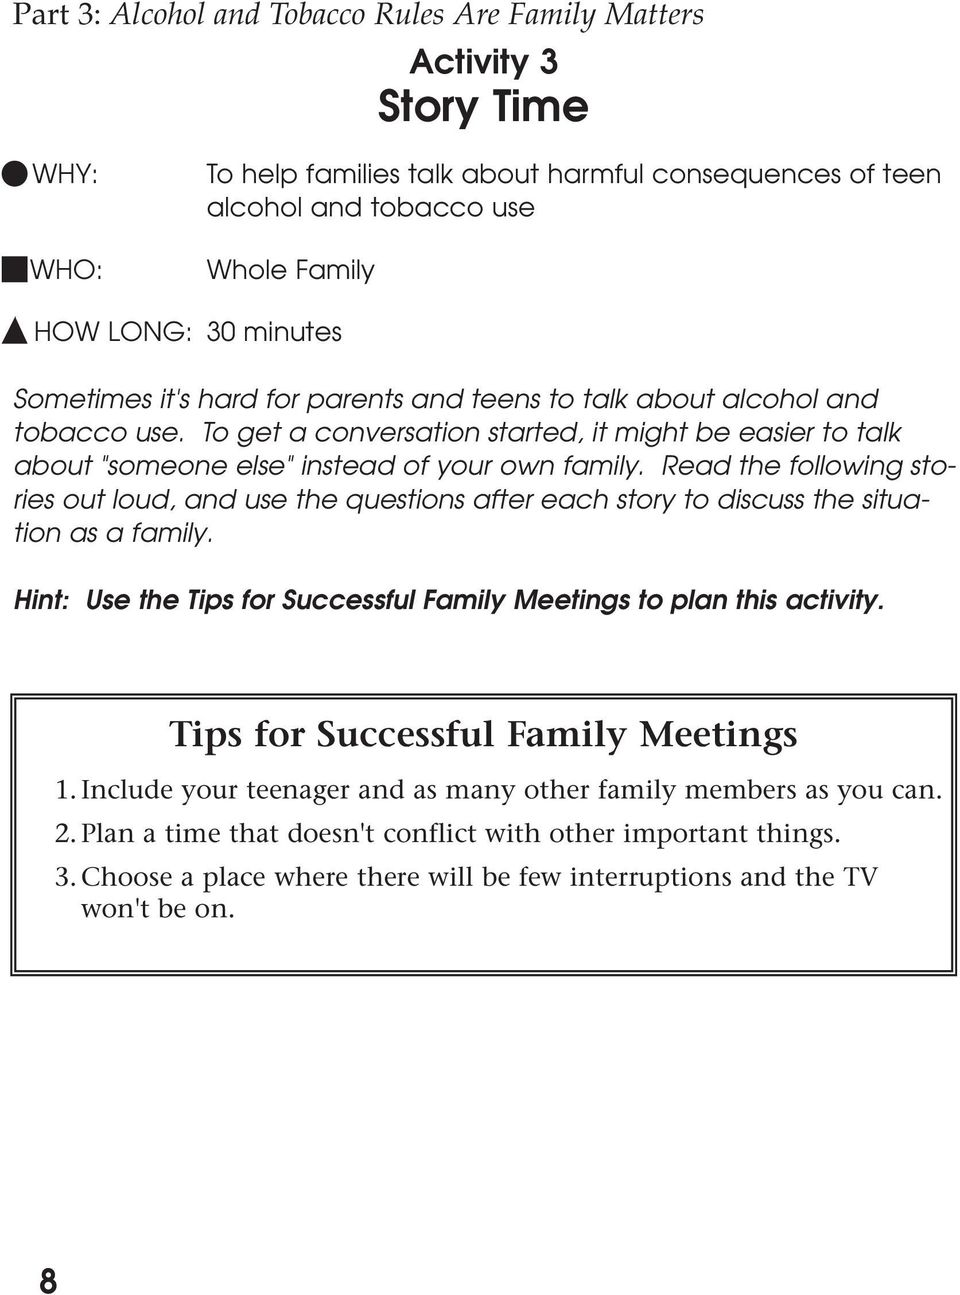 Read the following stories out loud, and use the questions after each story to discuss the situation as a family. Hint: Use the Tips for Successful Family Meetings to plan this activity.